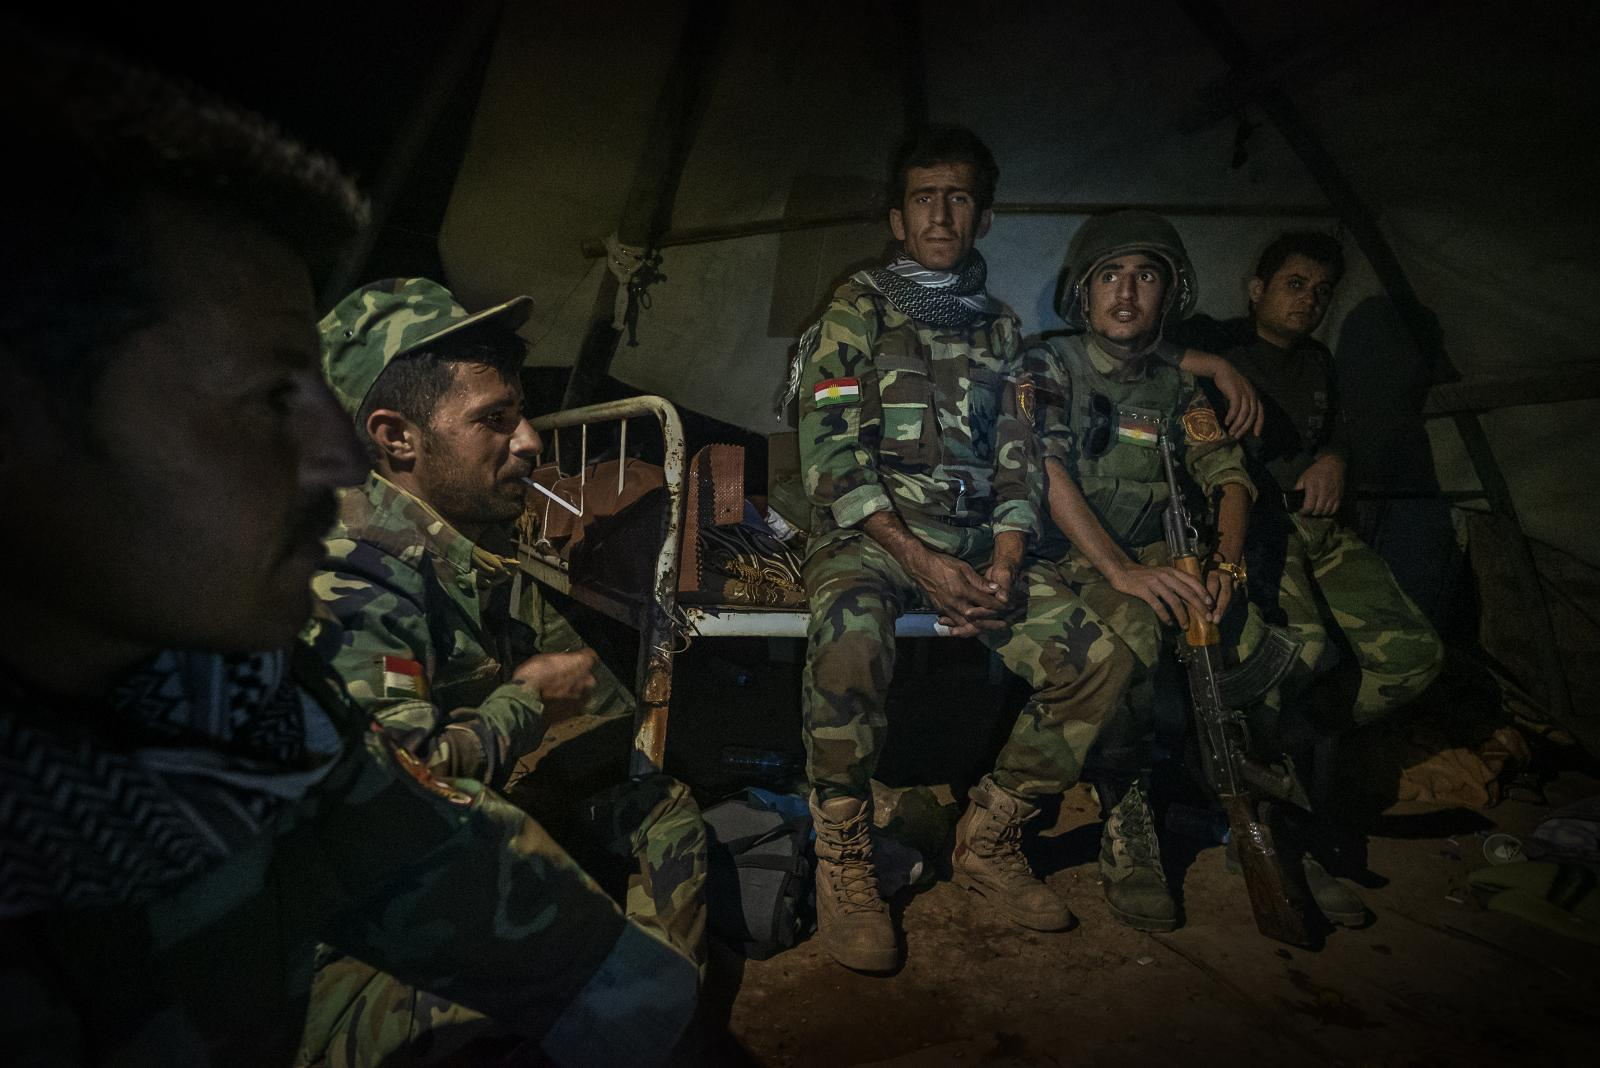 Peshmerga soldiers (those who face death) on alert for a possible night raid by Islamic State fighters rest in a trench on the front lines near Khazir (Iraq, 2016)